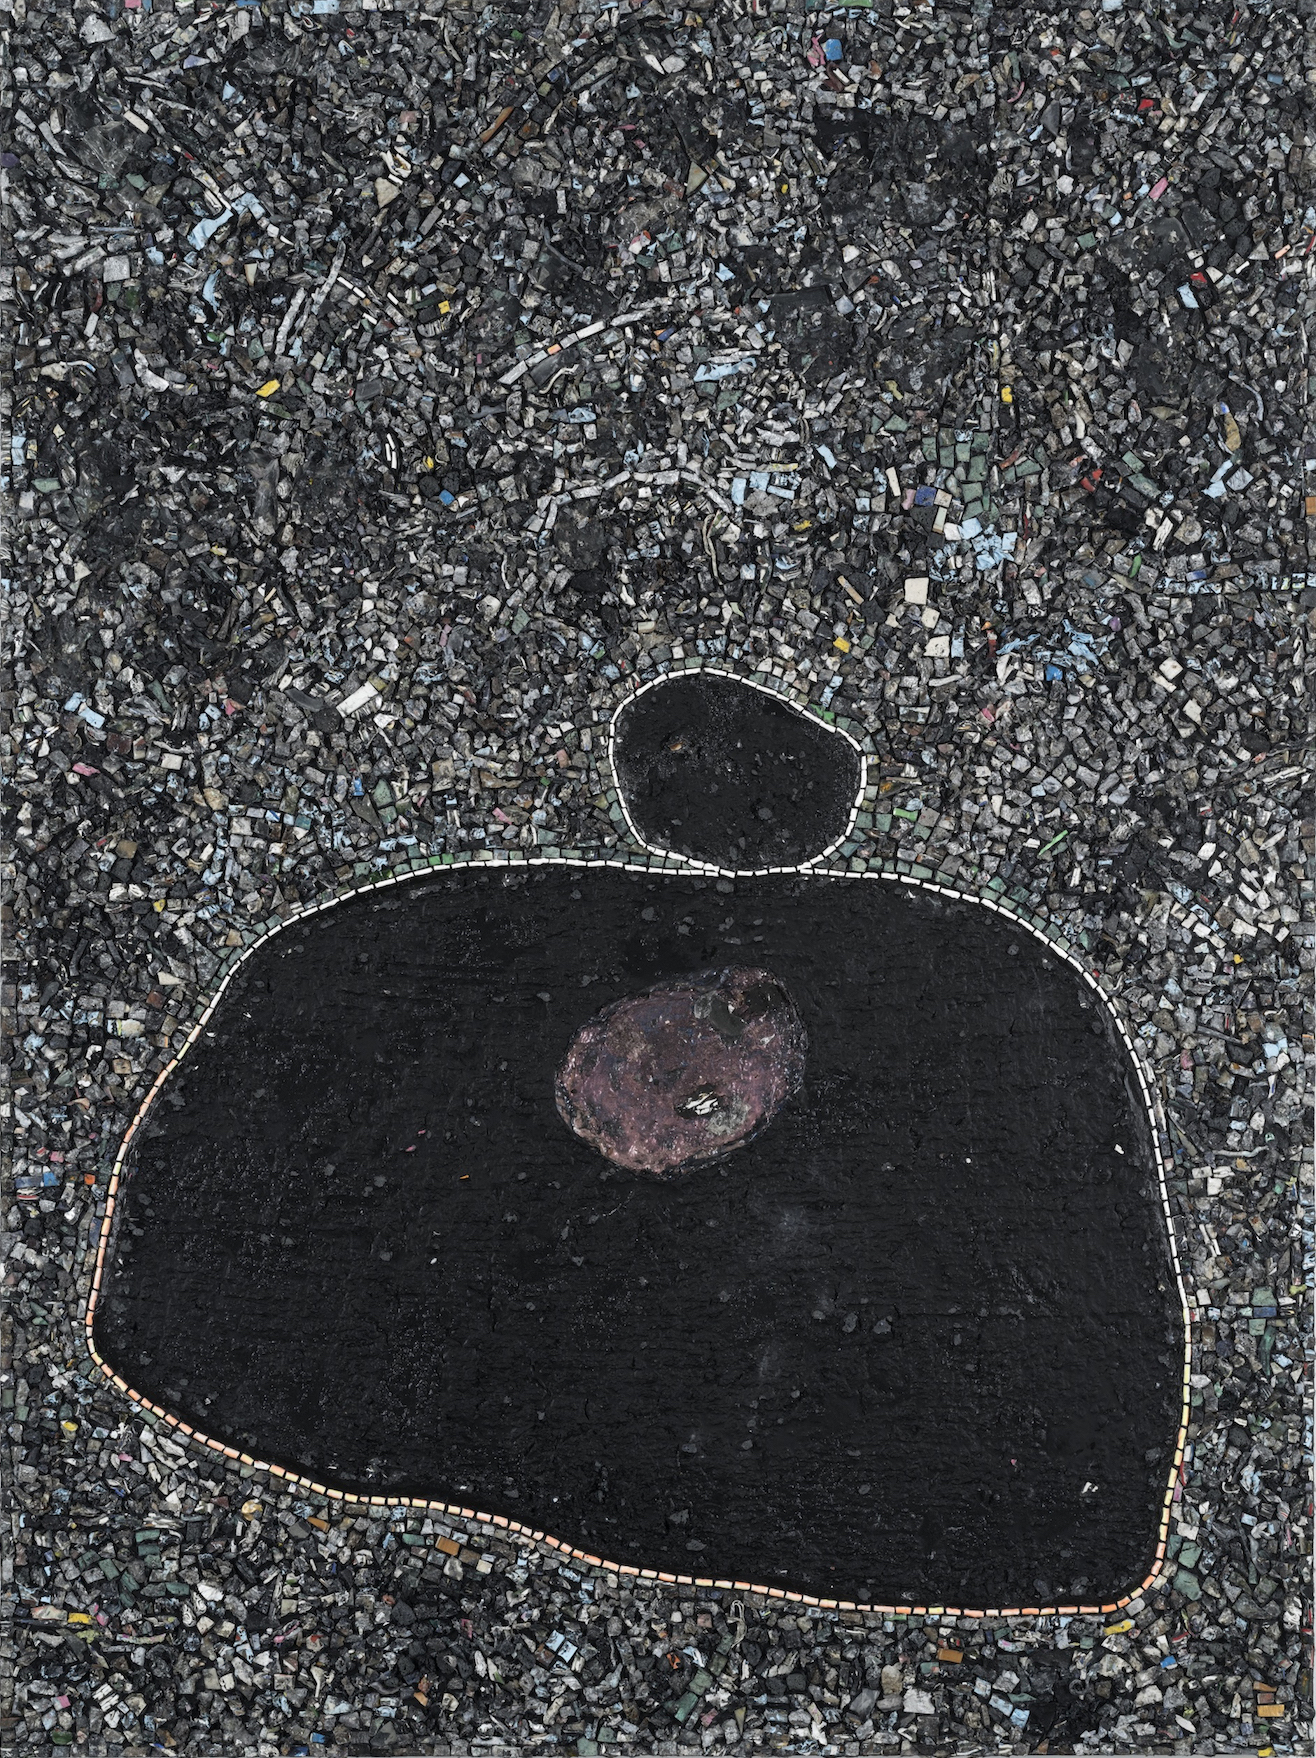 Black Monolith X, Birth of Muhammad Ali, 2016, acrylic on canvas, 84 x 63 inches (courtesy of Hauser & Wirth)